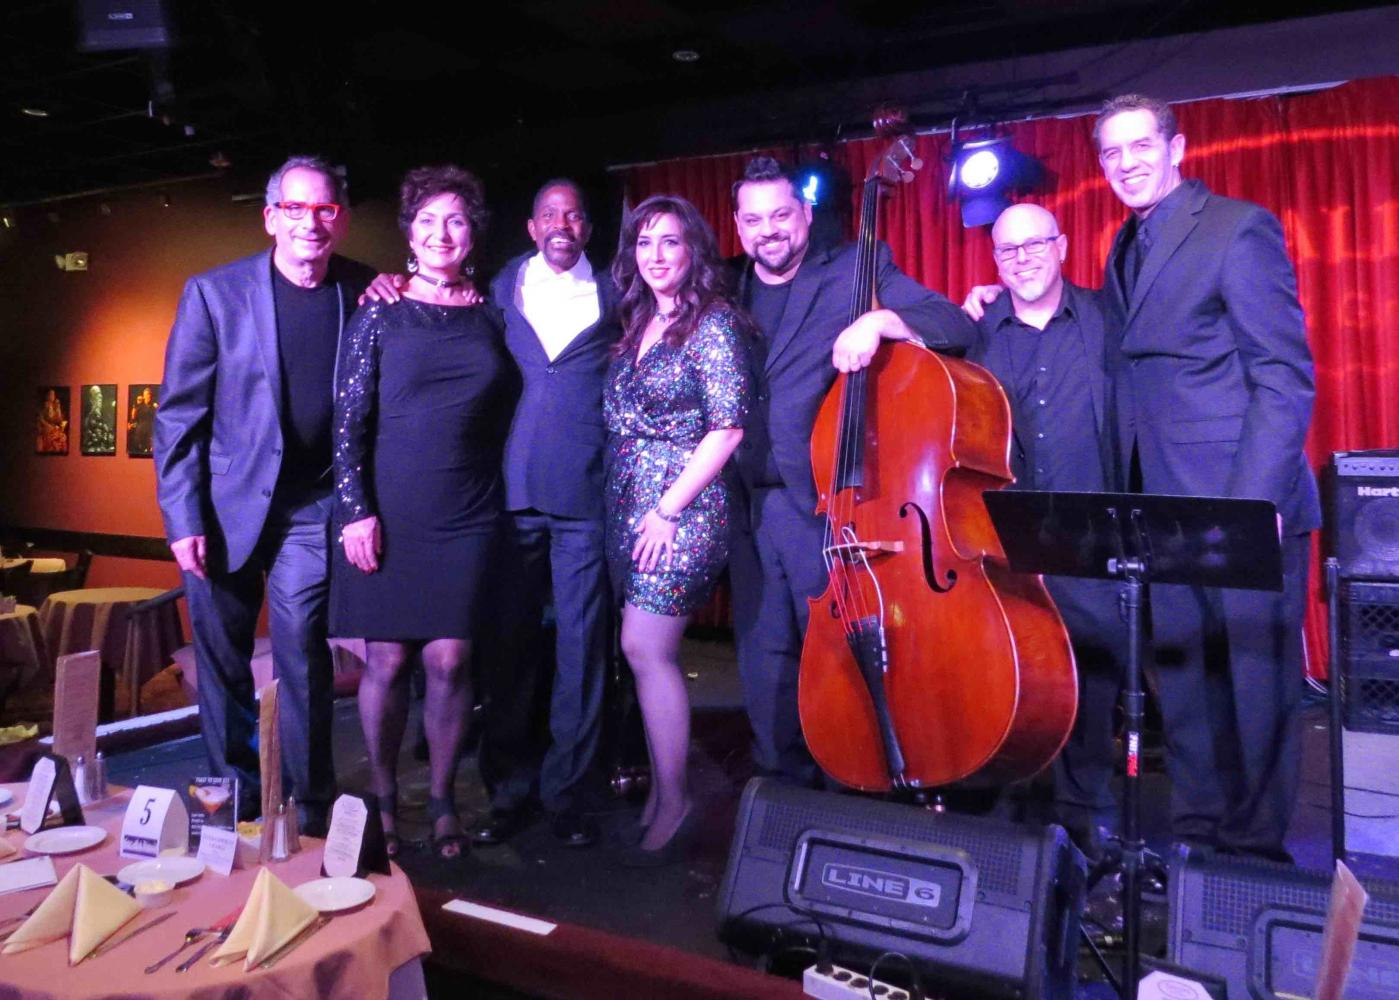 Path Ventures And George Kahn 11th Annual Jazz & Blues Revue Fundraiser For The Homeless Raises Over $54,000